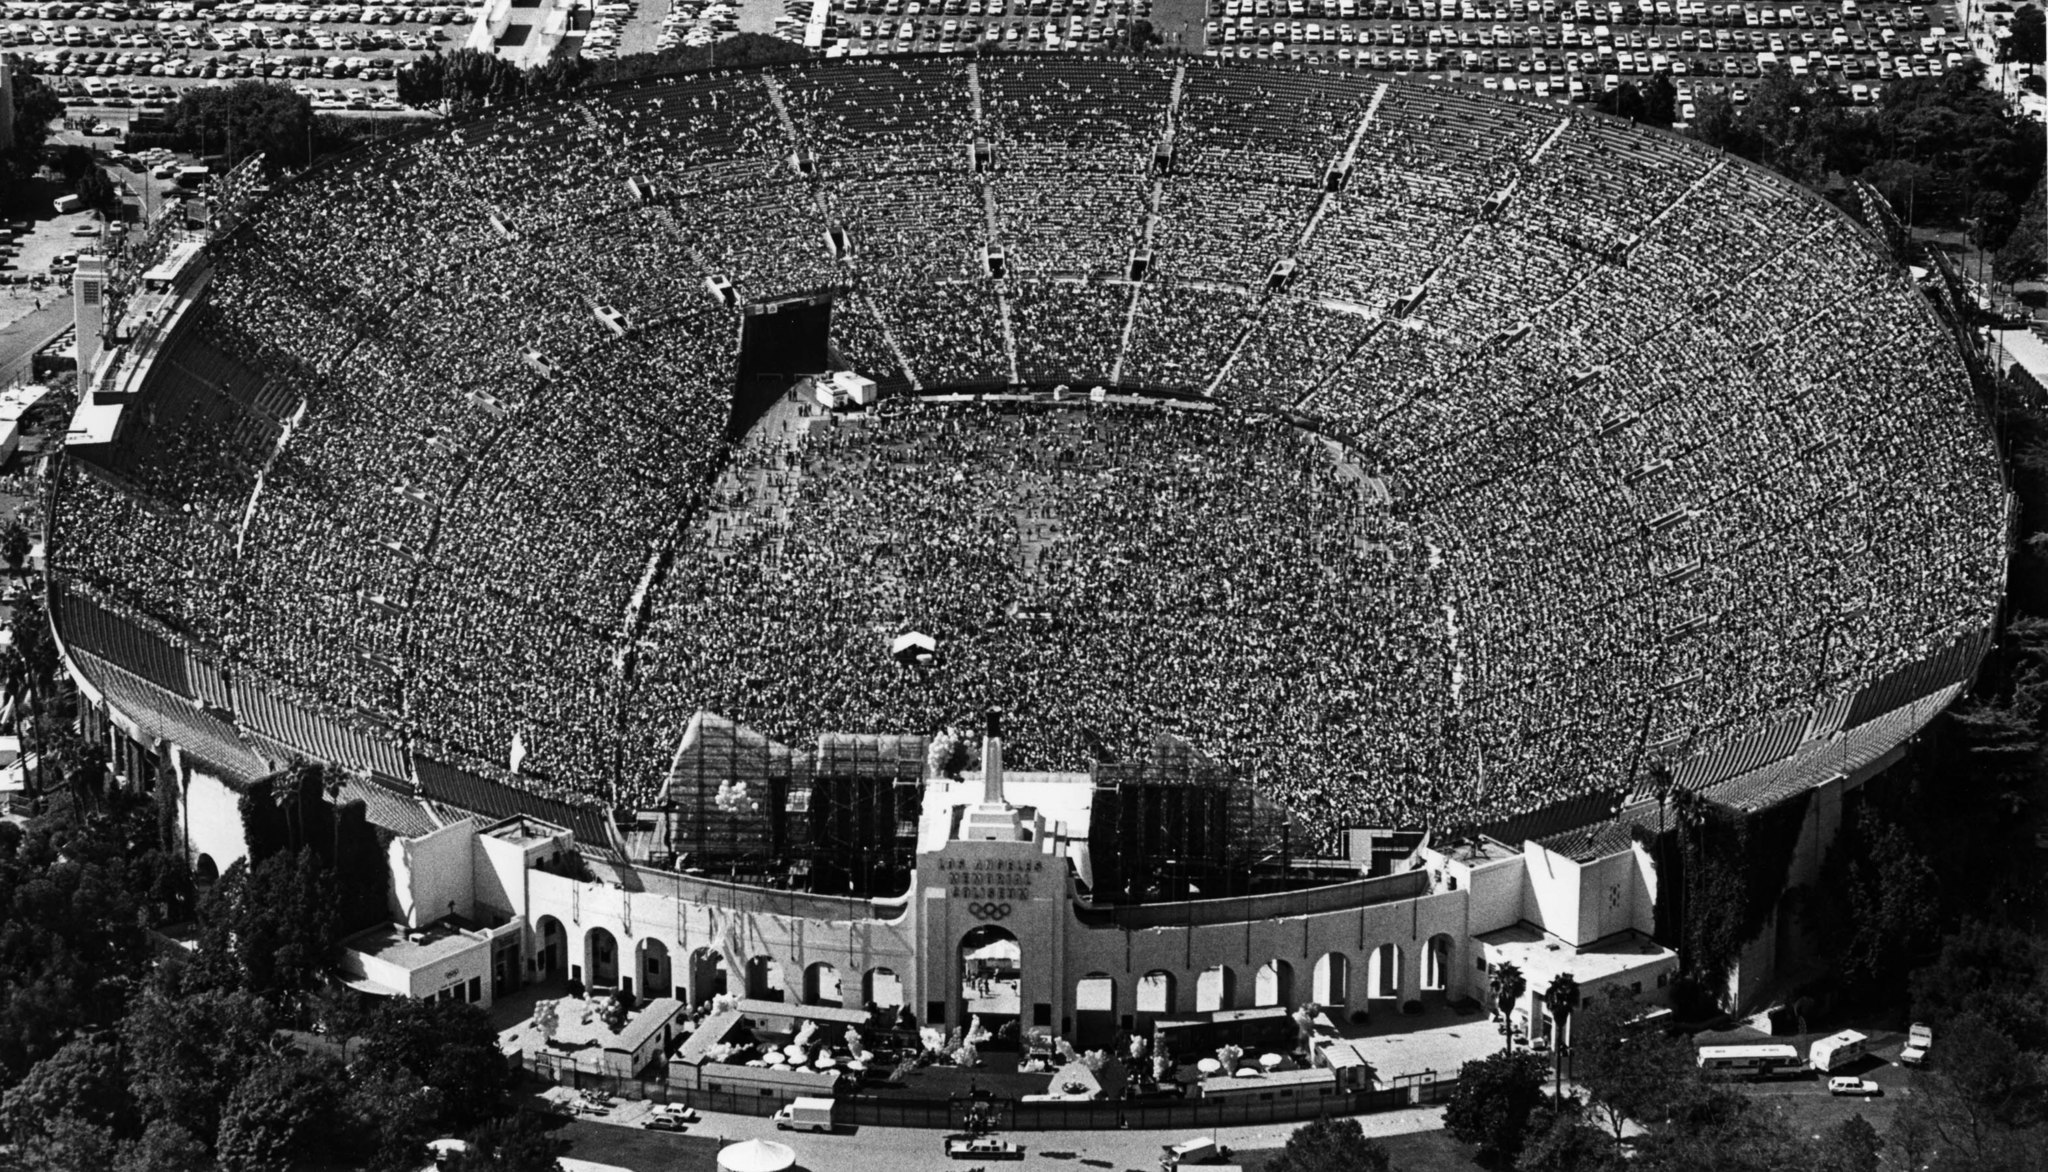 Oct. 11, 1981: An aerial view of the Los Angeles Memorial Coliseum shortly before the start of a Rol